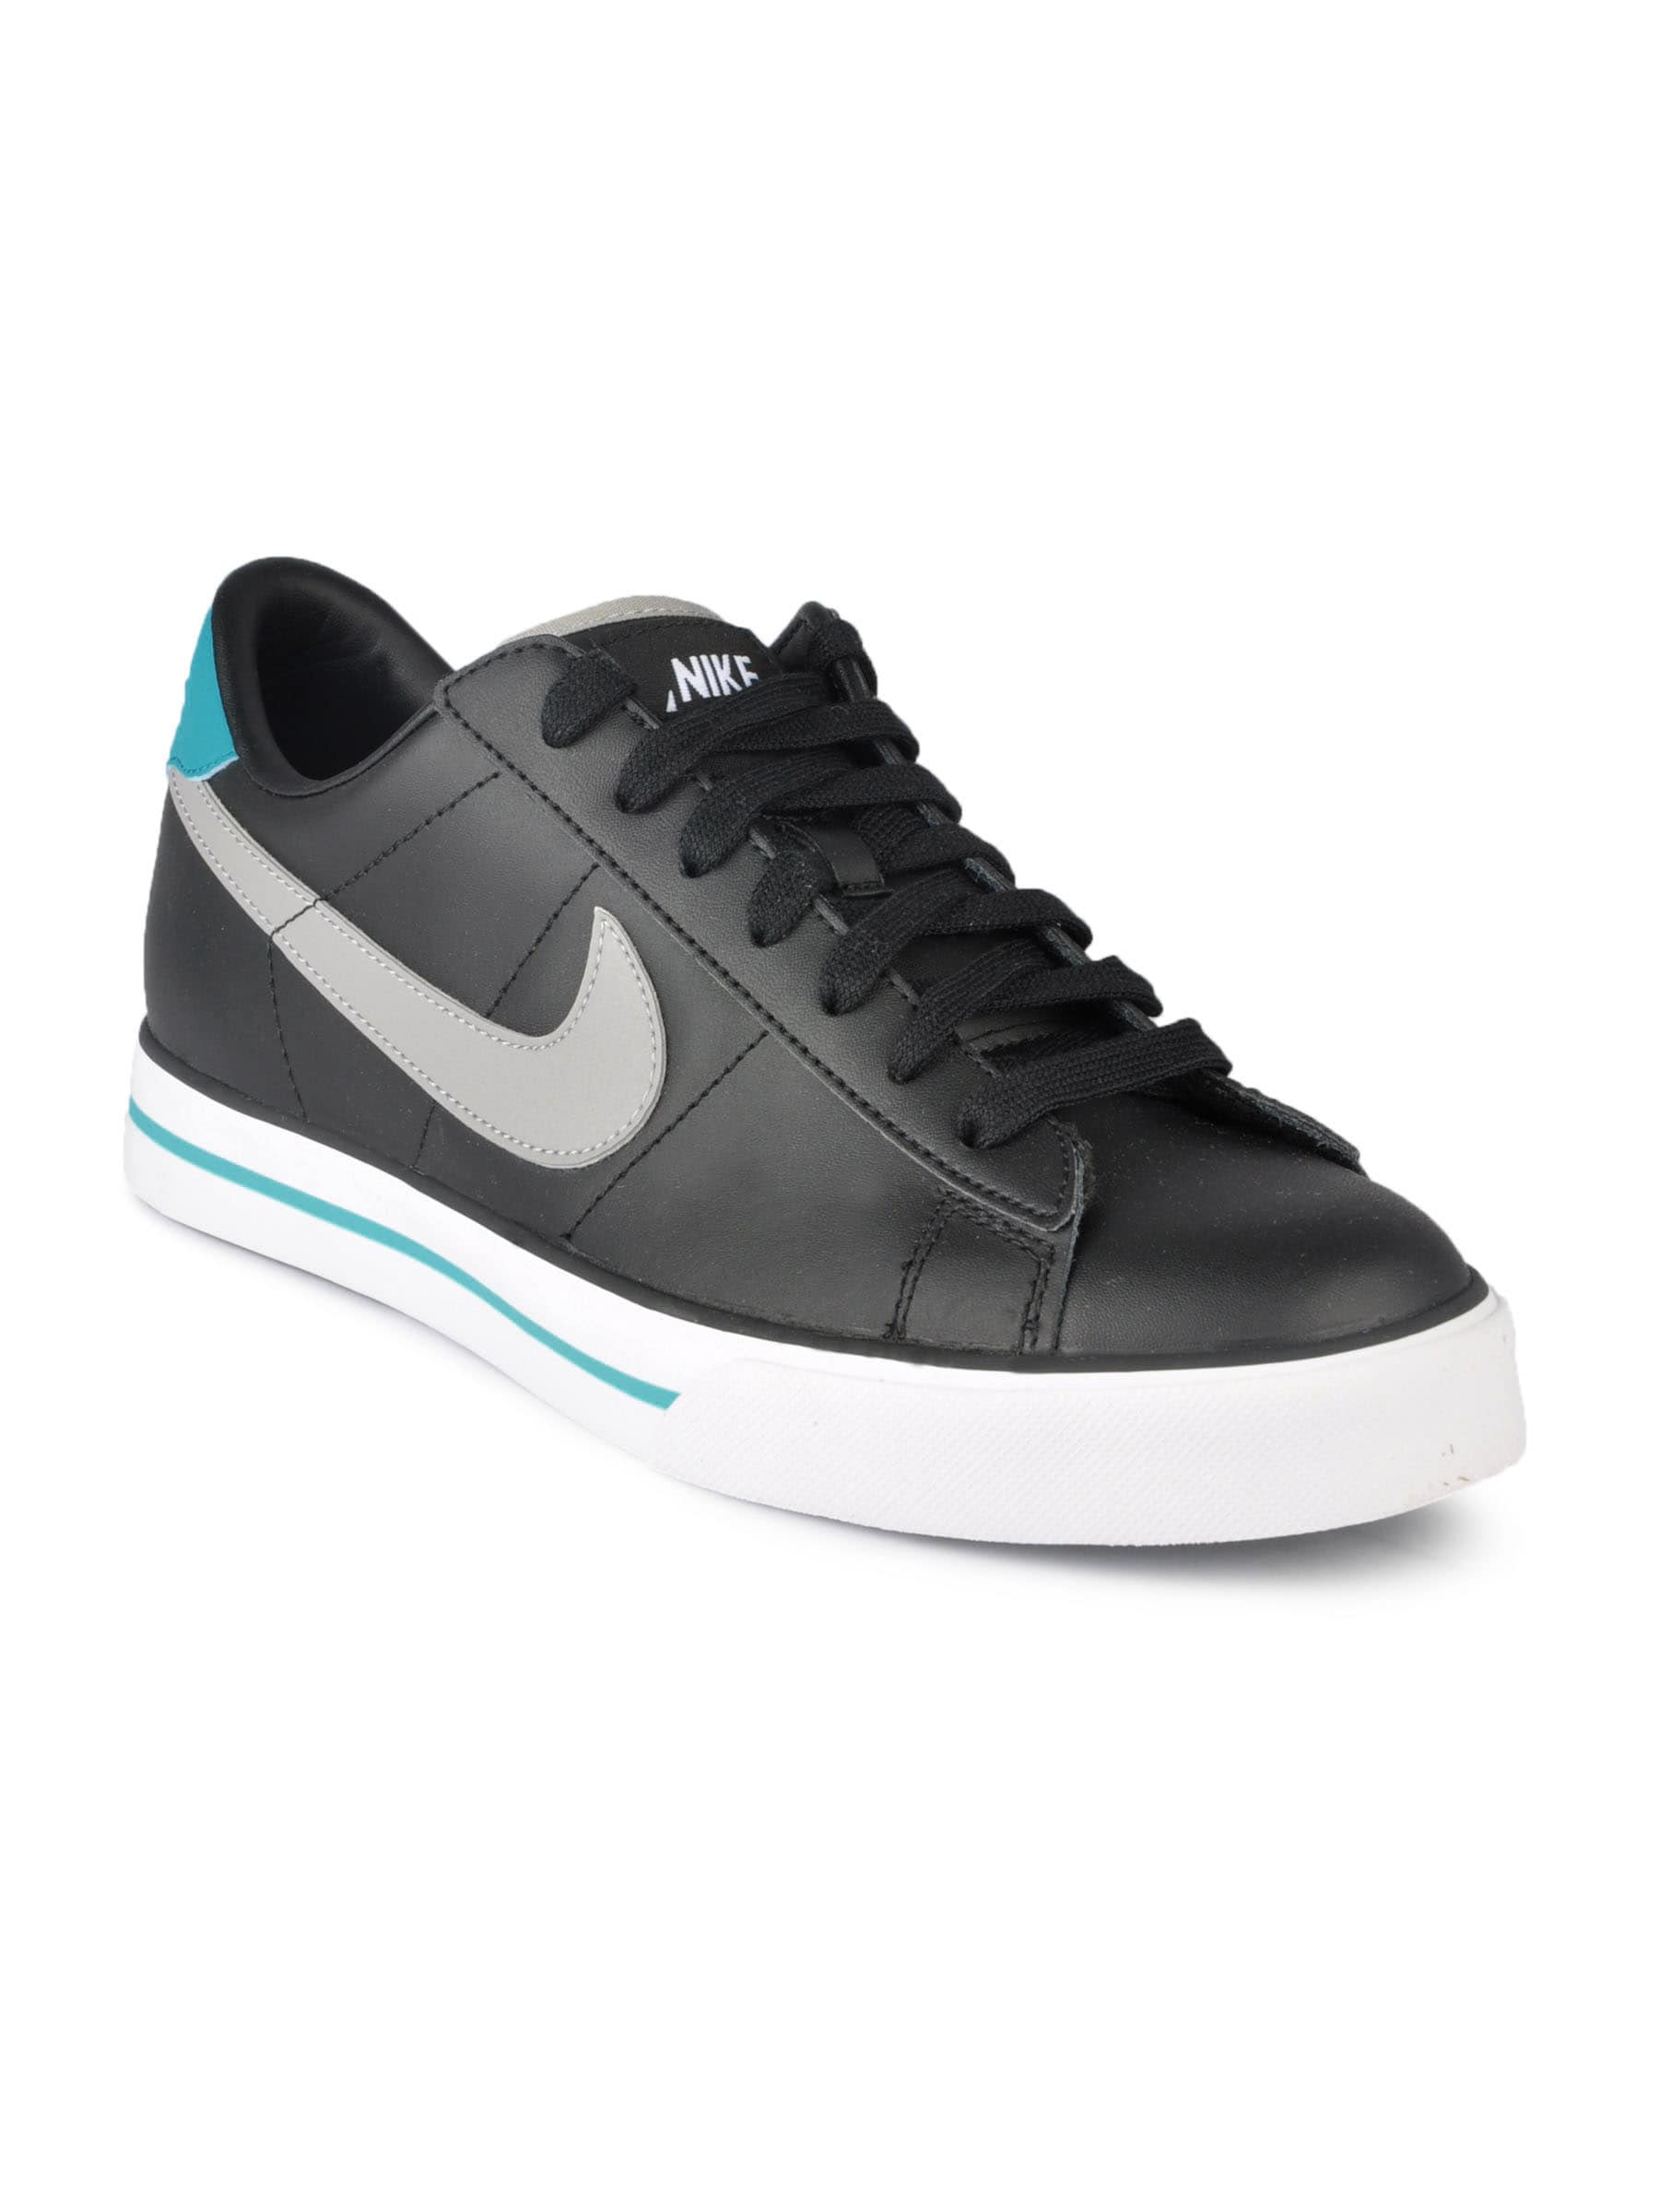 Nike 318333-033 Men Sweet Classic Leather Black Casual Shoes- Price in India bc61c35bd